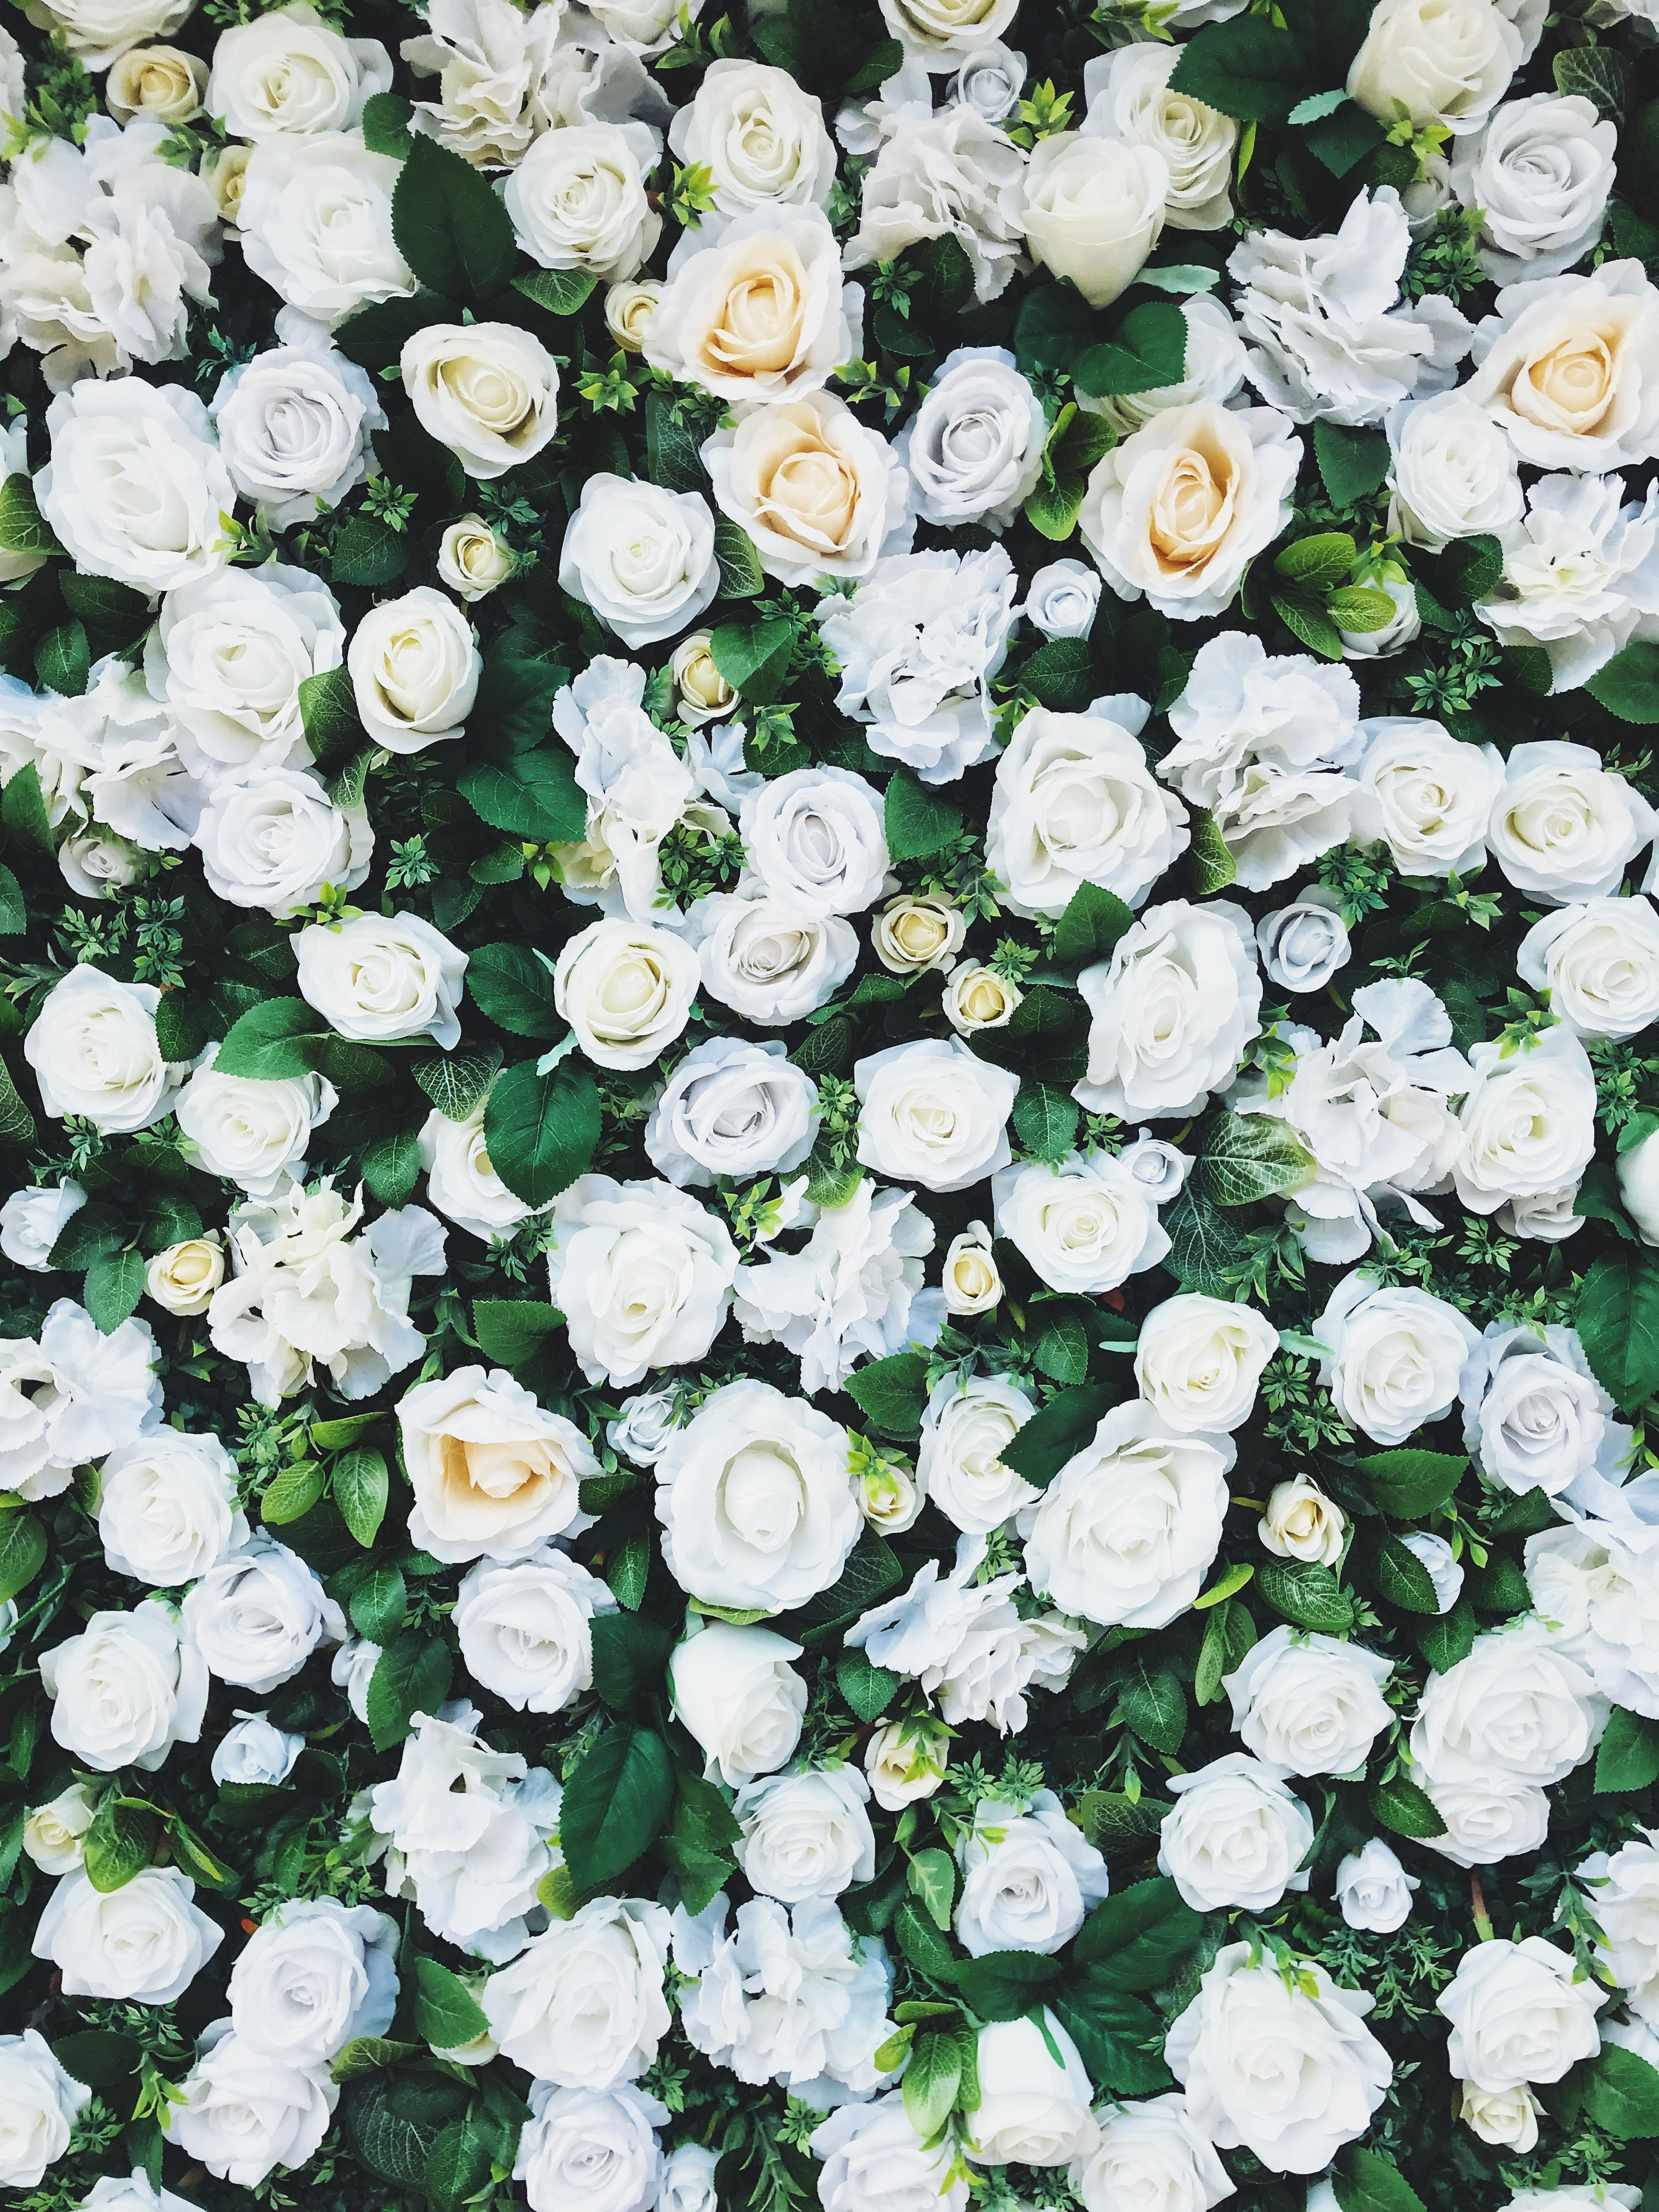 Flower Wall Pictures Download Free Images On Unsplash